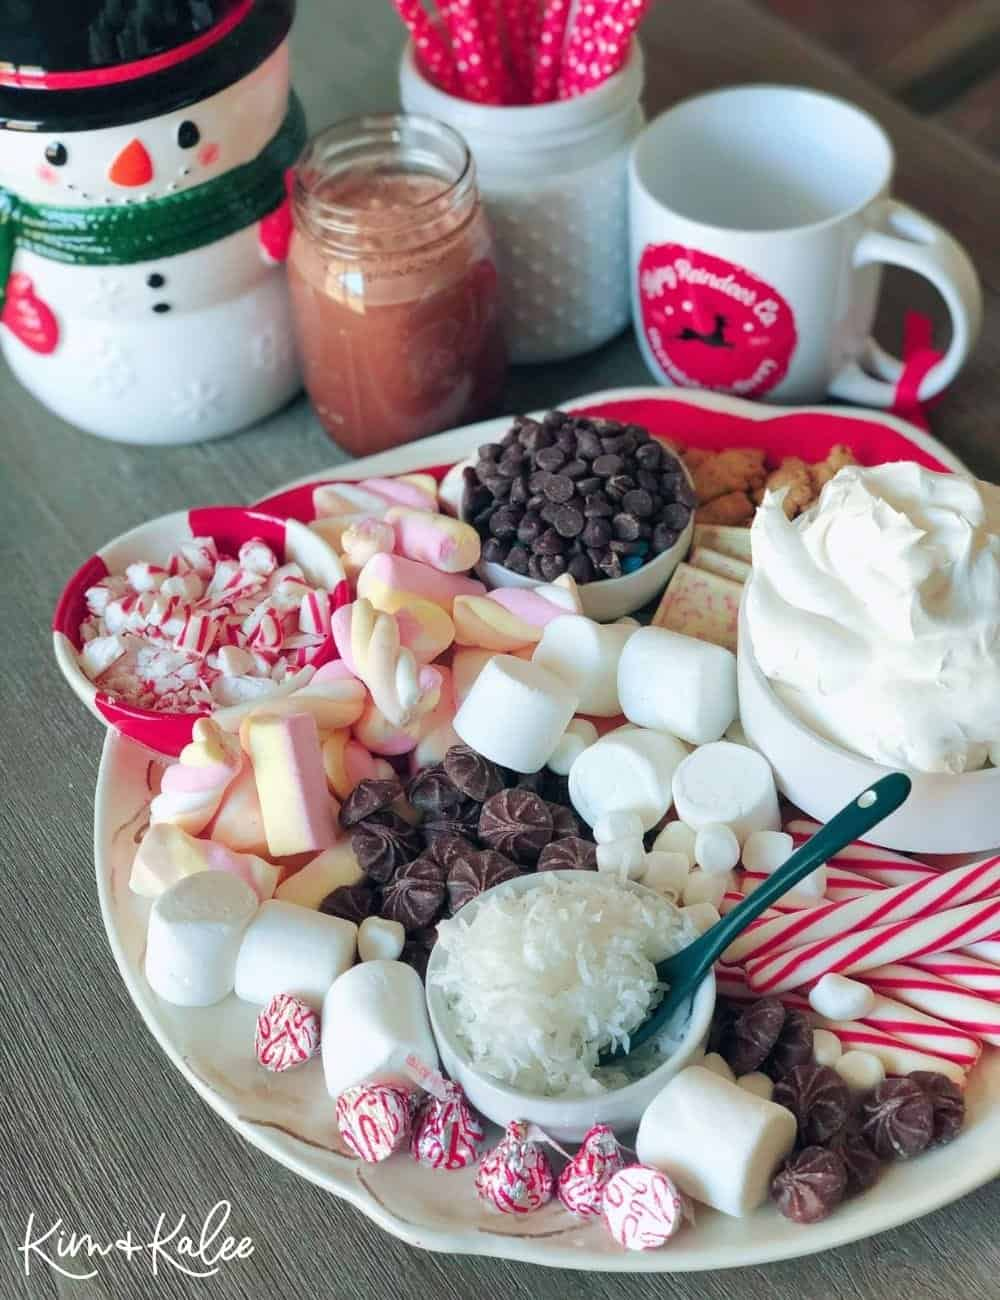 How to Make a Hot Chocolate Charcuterie Board with a snowman, mugs, and straws